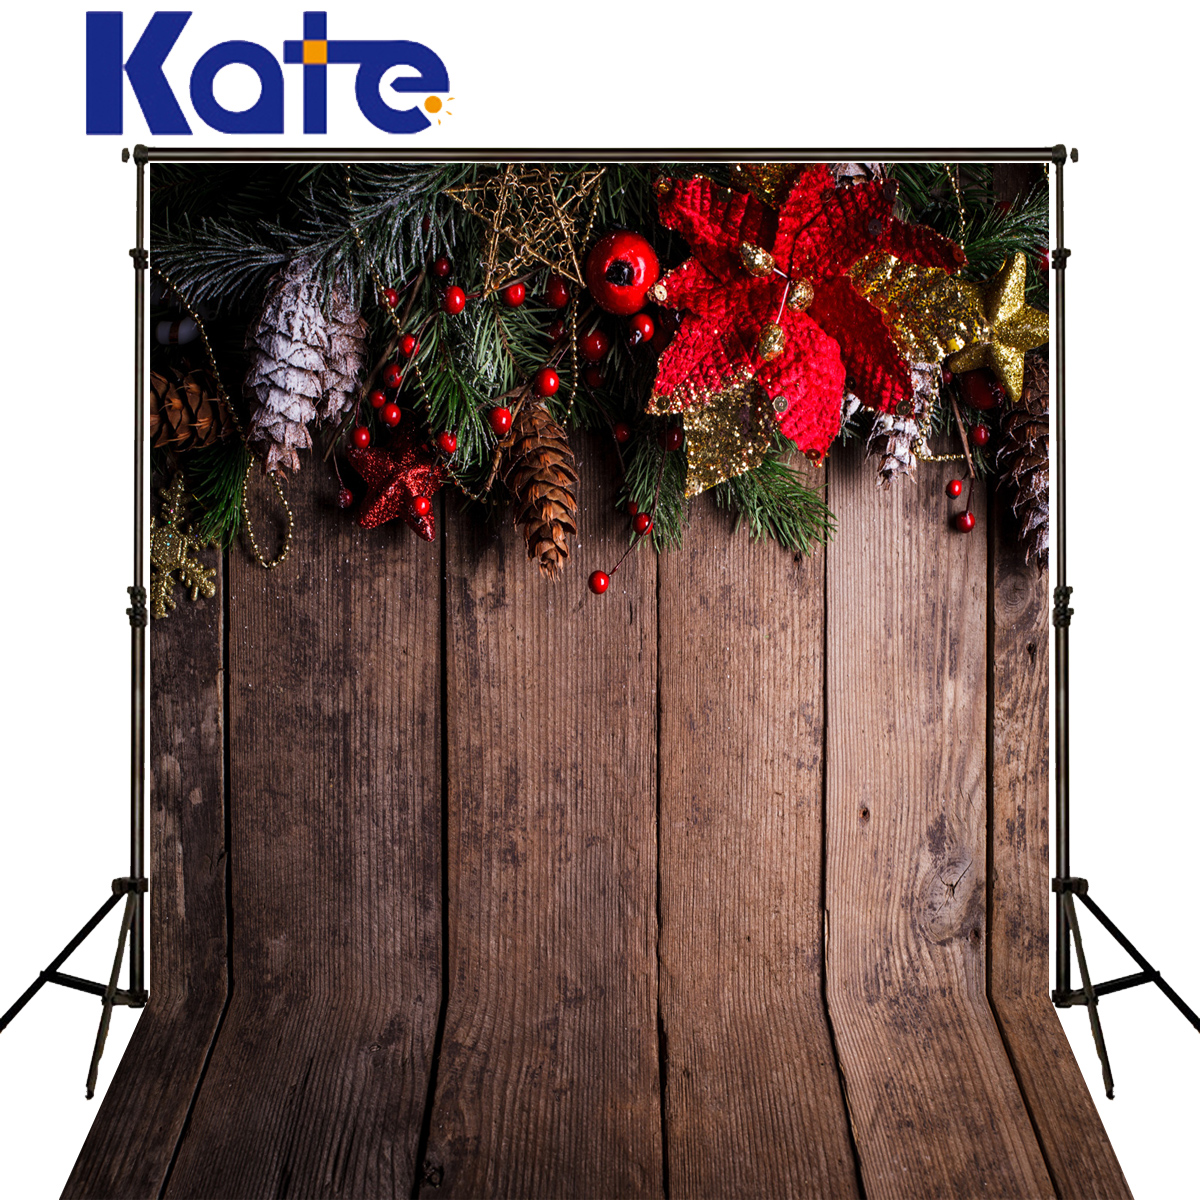 KATE Photo Background Christmas Photography Backdrops Wooden Plank Backdrop Decoracion Navidad Vintage Background for Studio сумка kate spade new york wkru2816 kate spade hanna